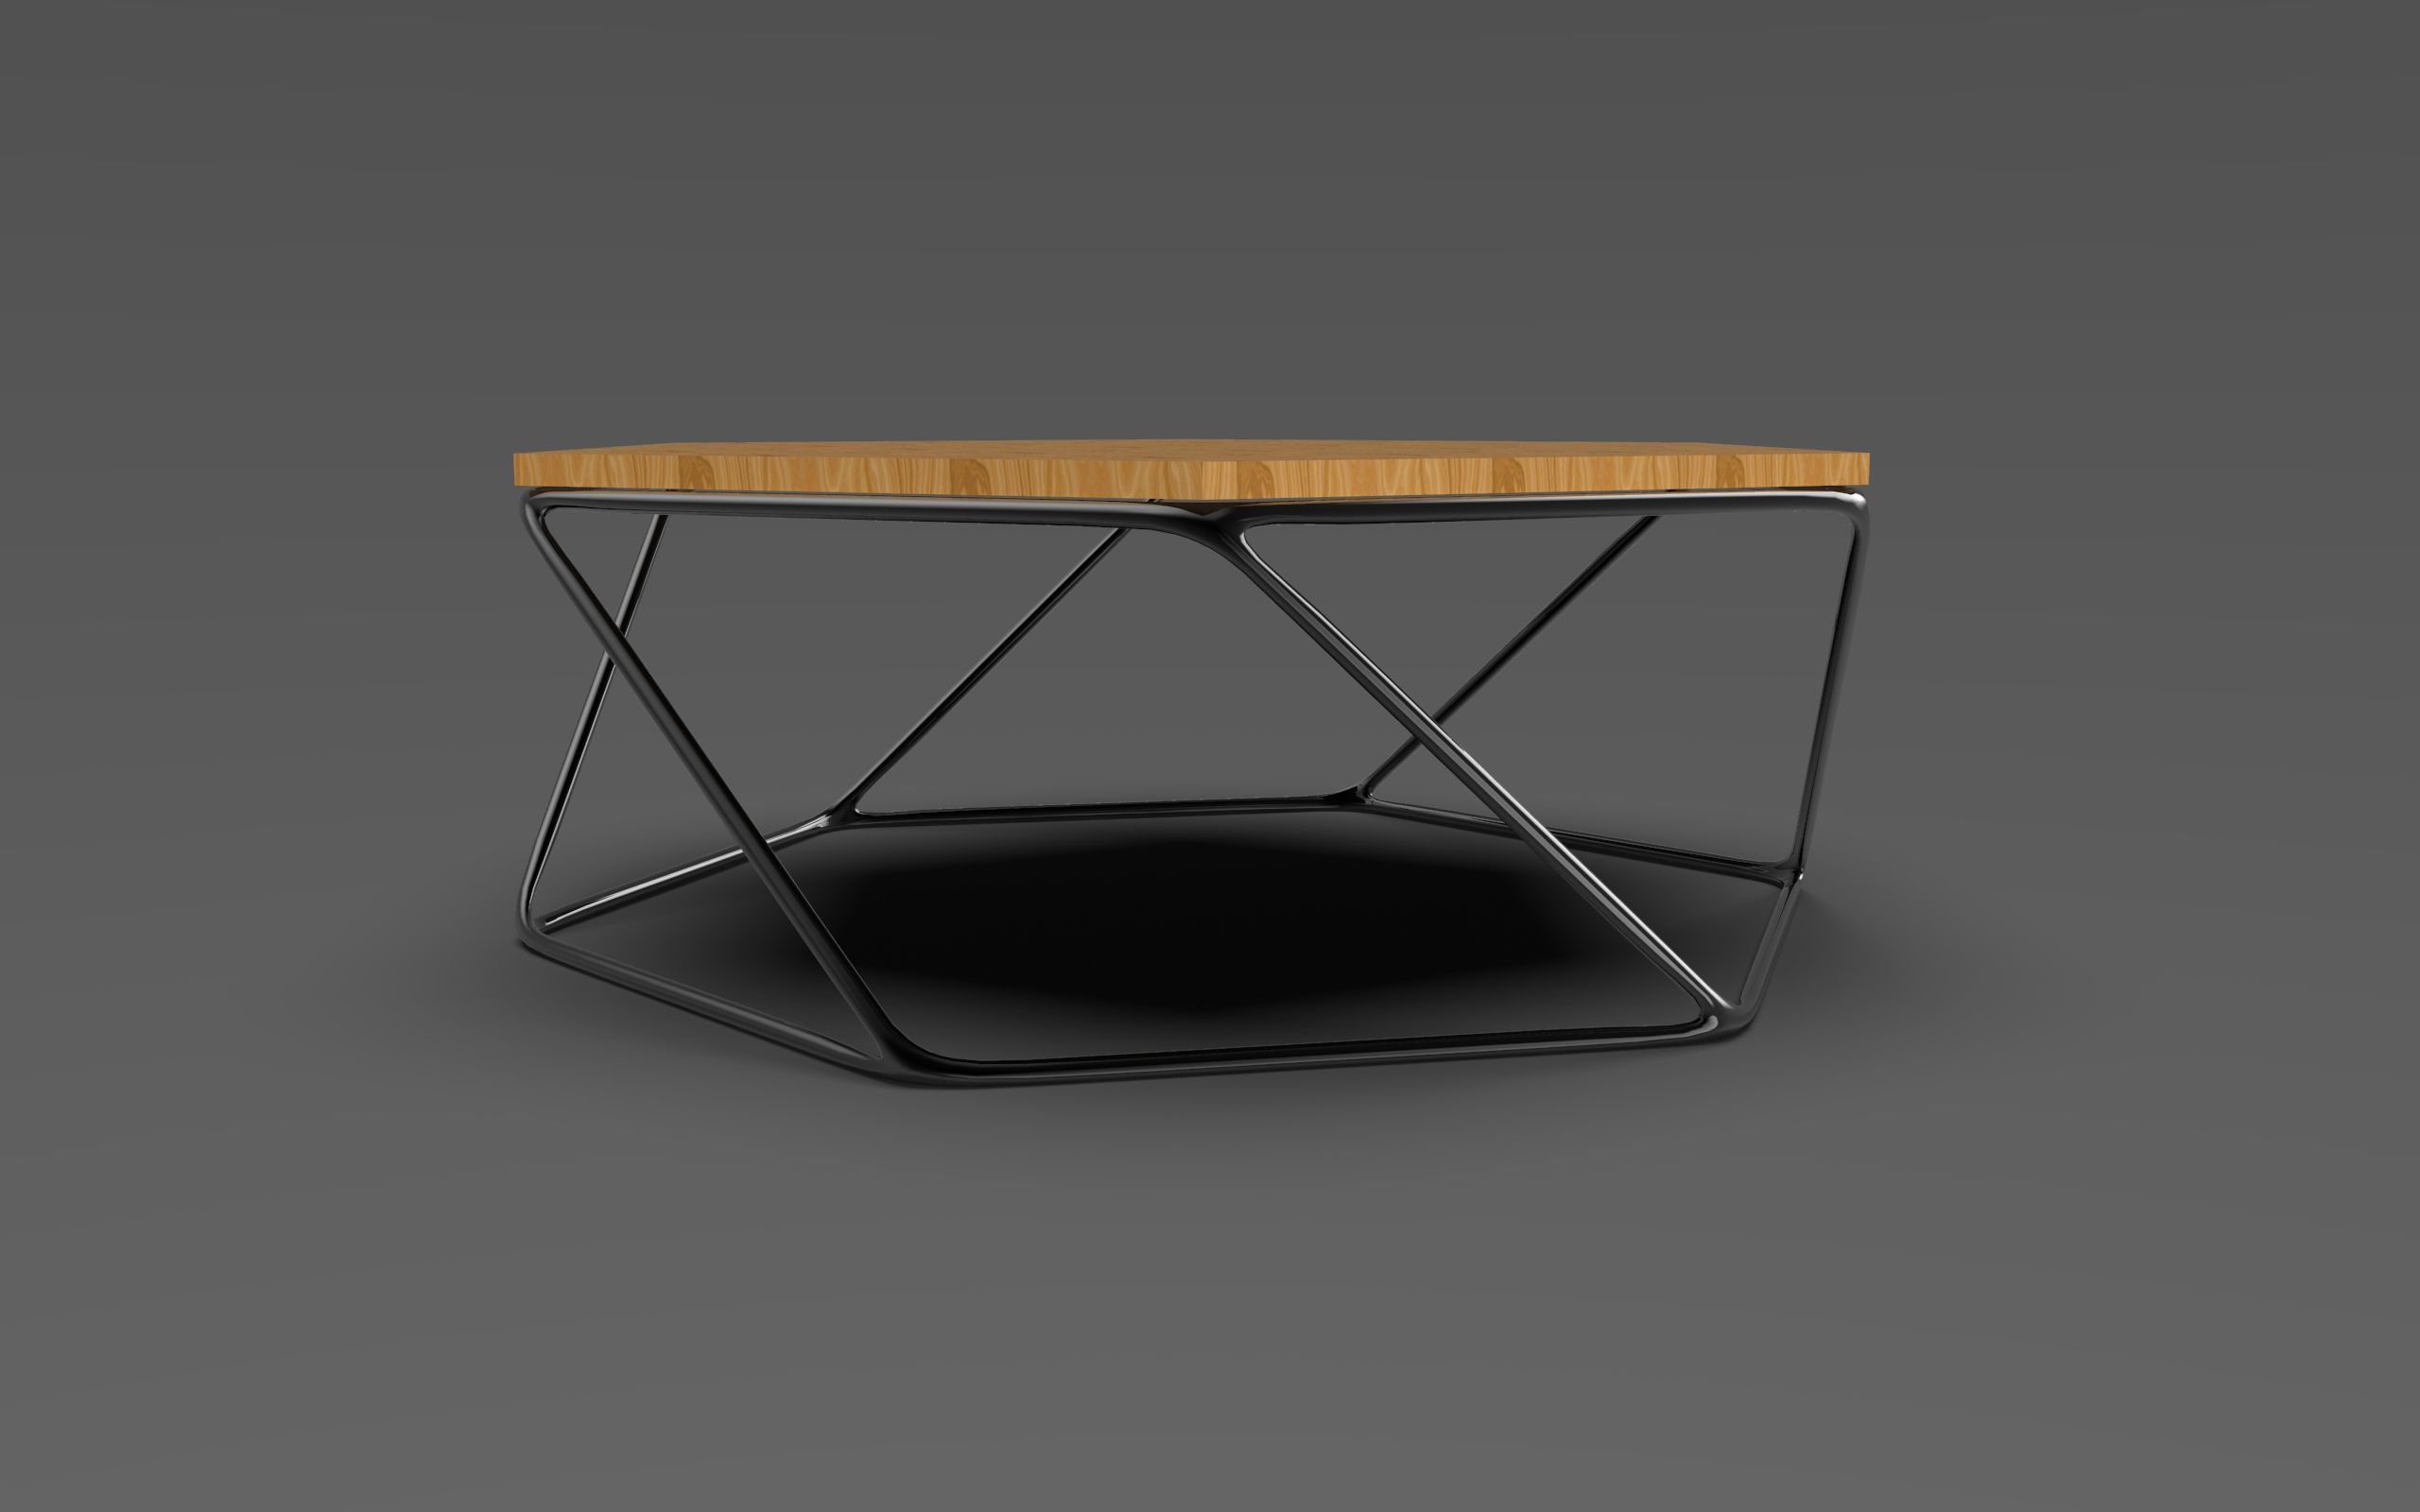 Coffee-table-ideas---fabrica-de-nerdes-3500-3500